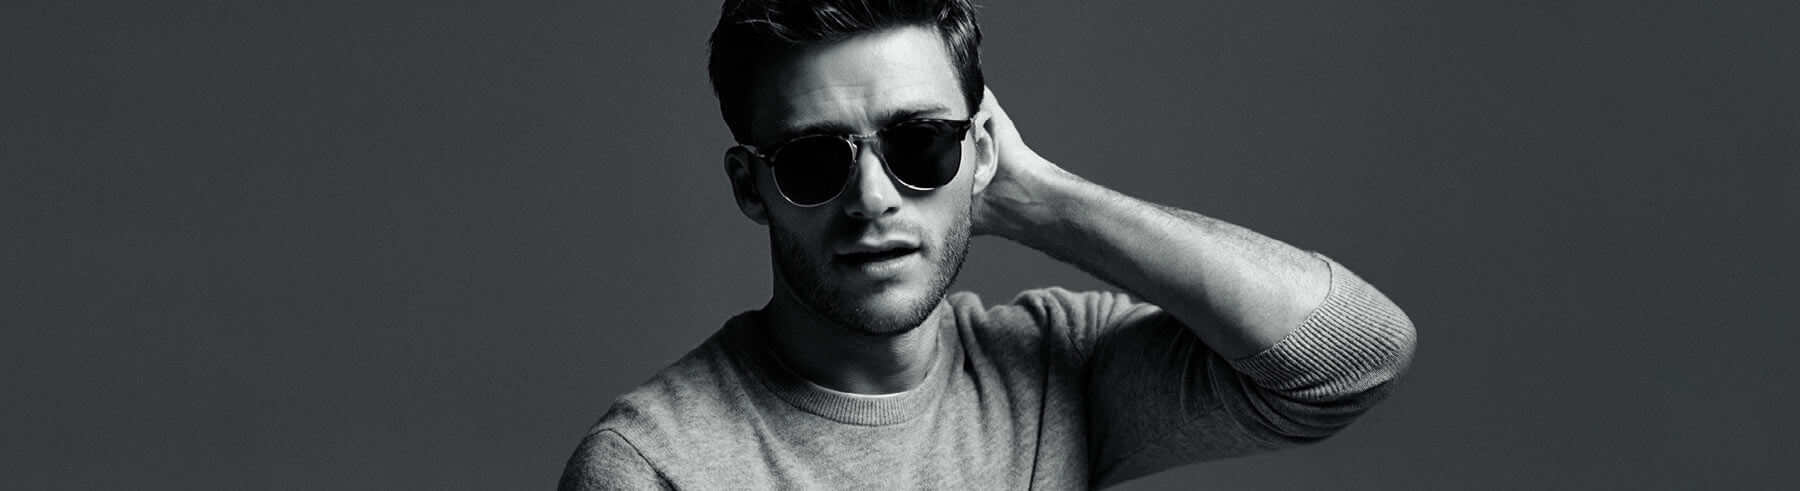 persol-banner-1